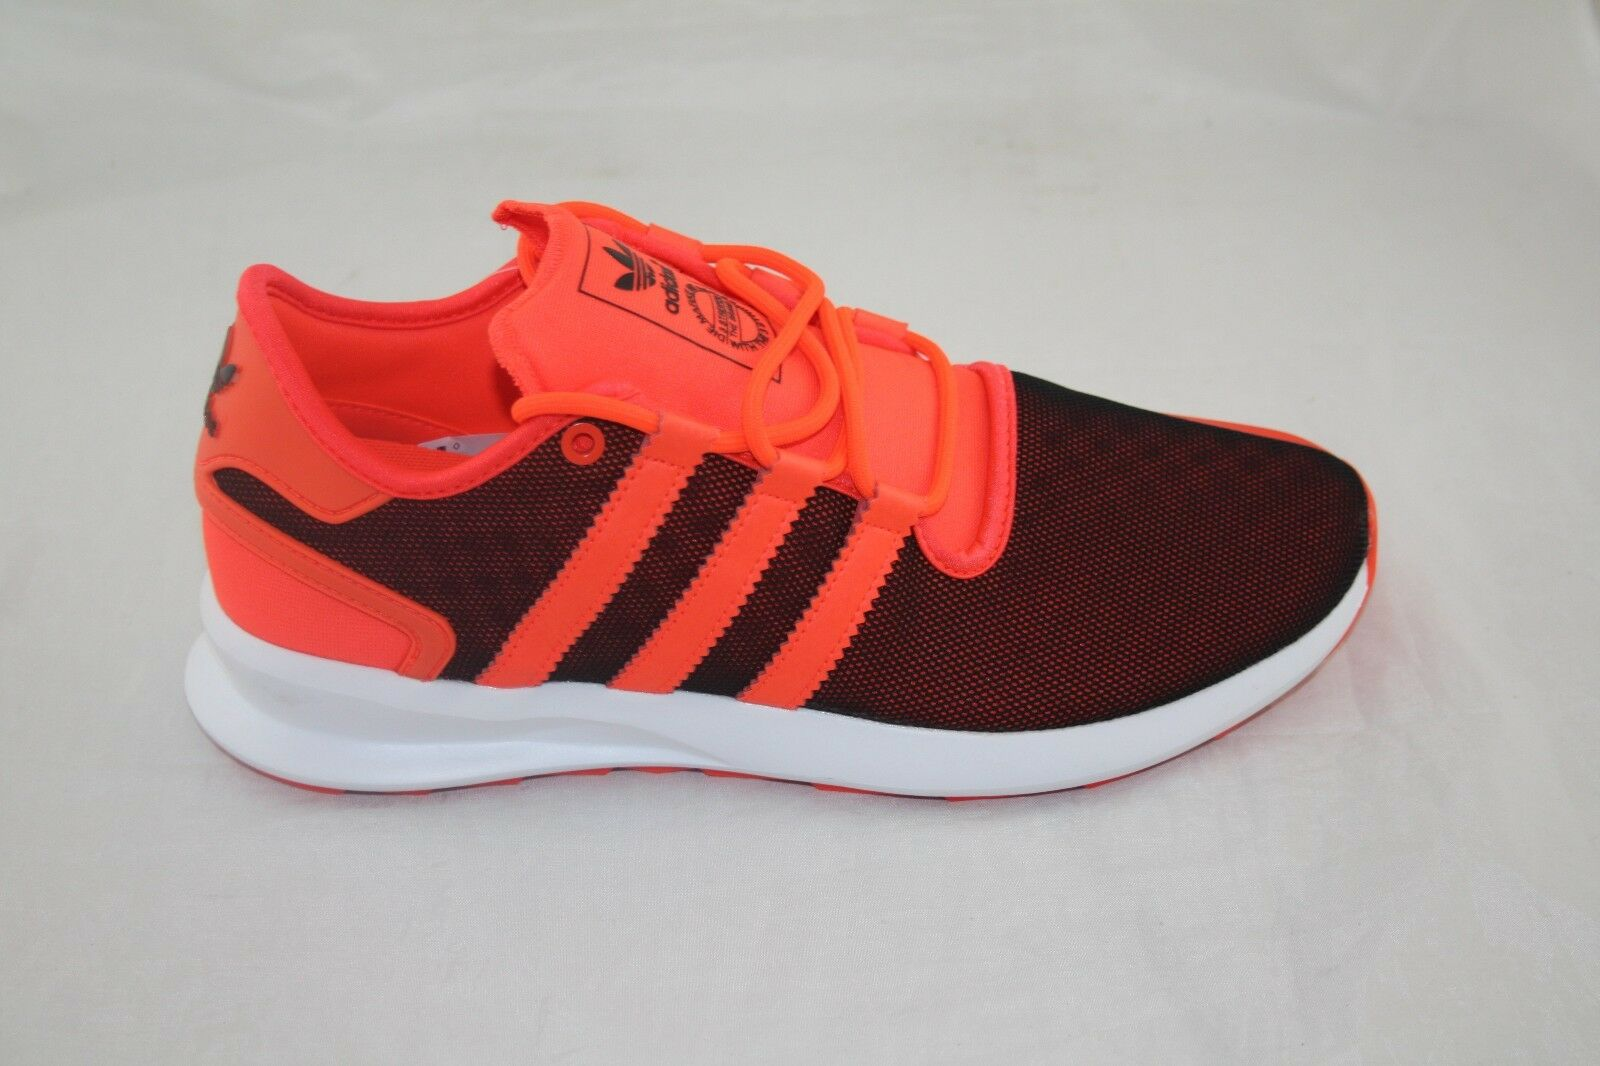 F37564 ADIDAS SL RISE ORIGINAL CBLACK/SOLRED/FTWWHT SIZE 10 N11 AVALIBLE New shoes for men and women, limited time discount